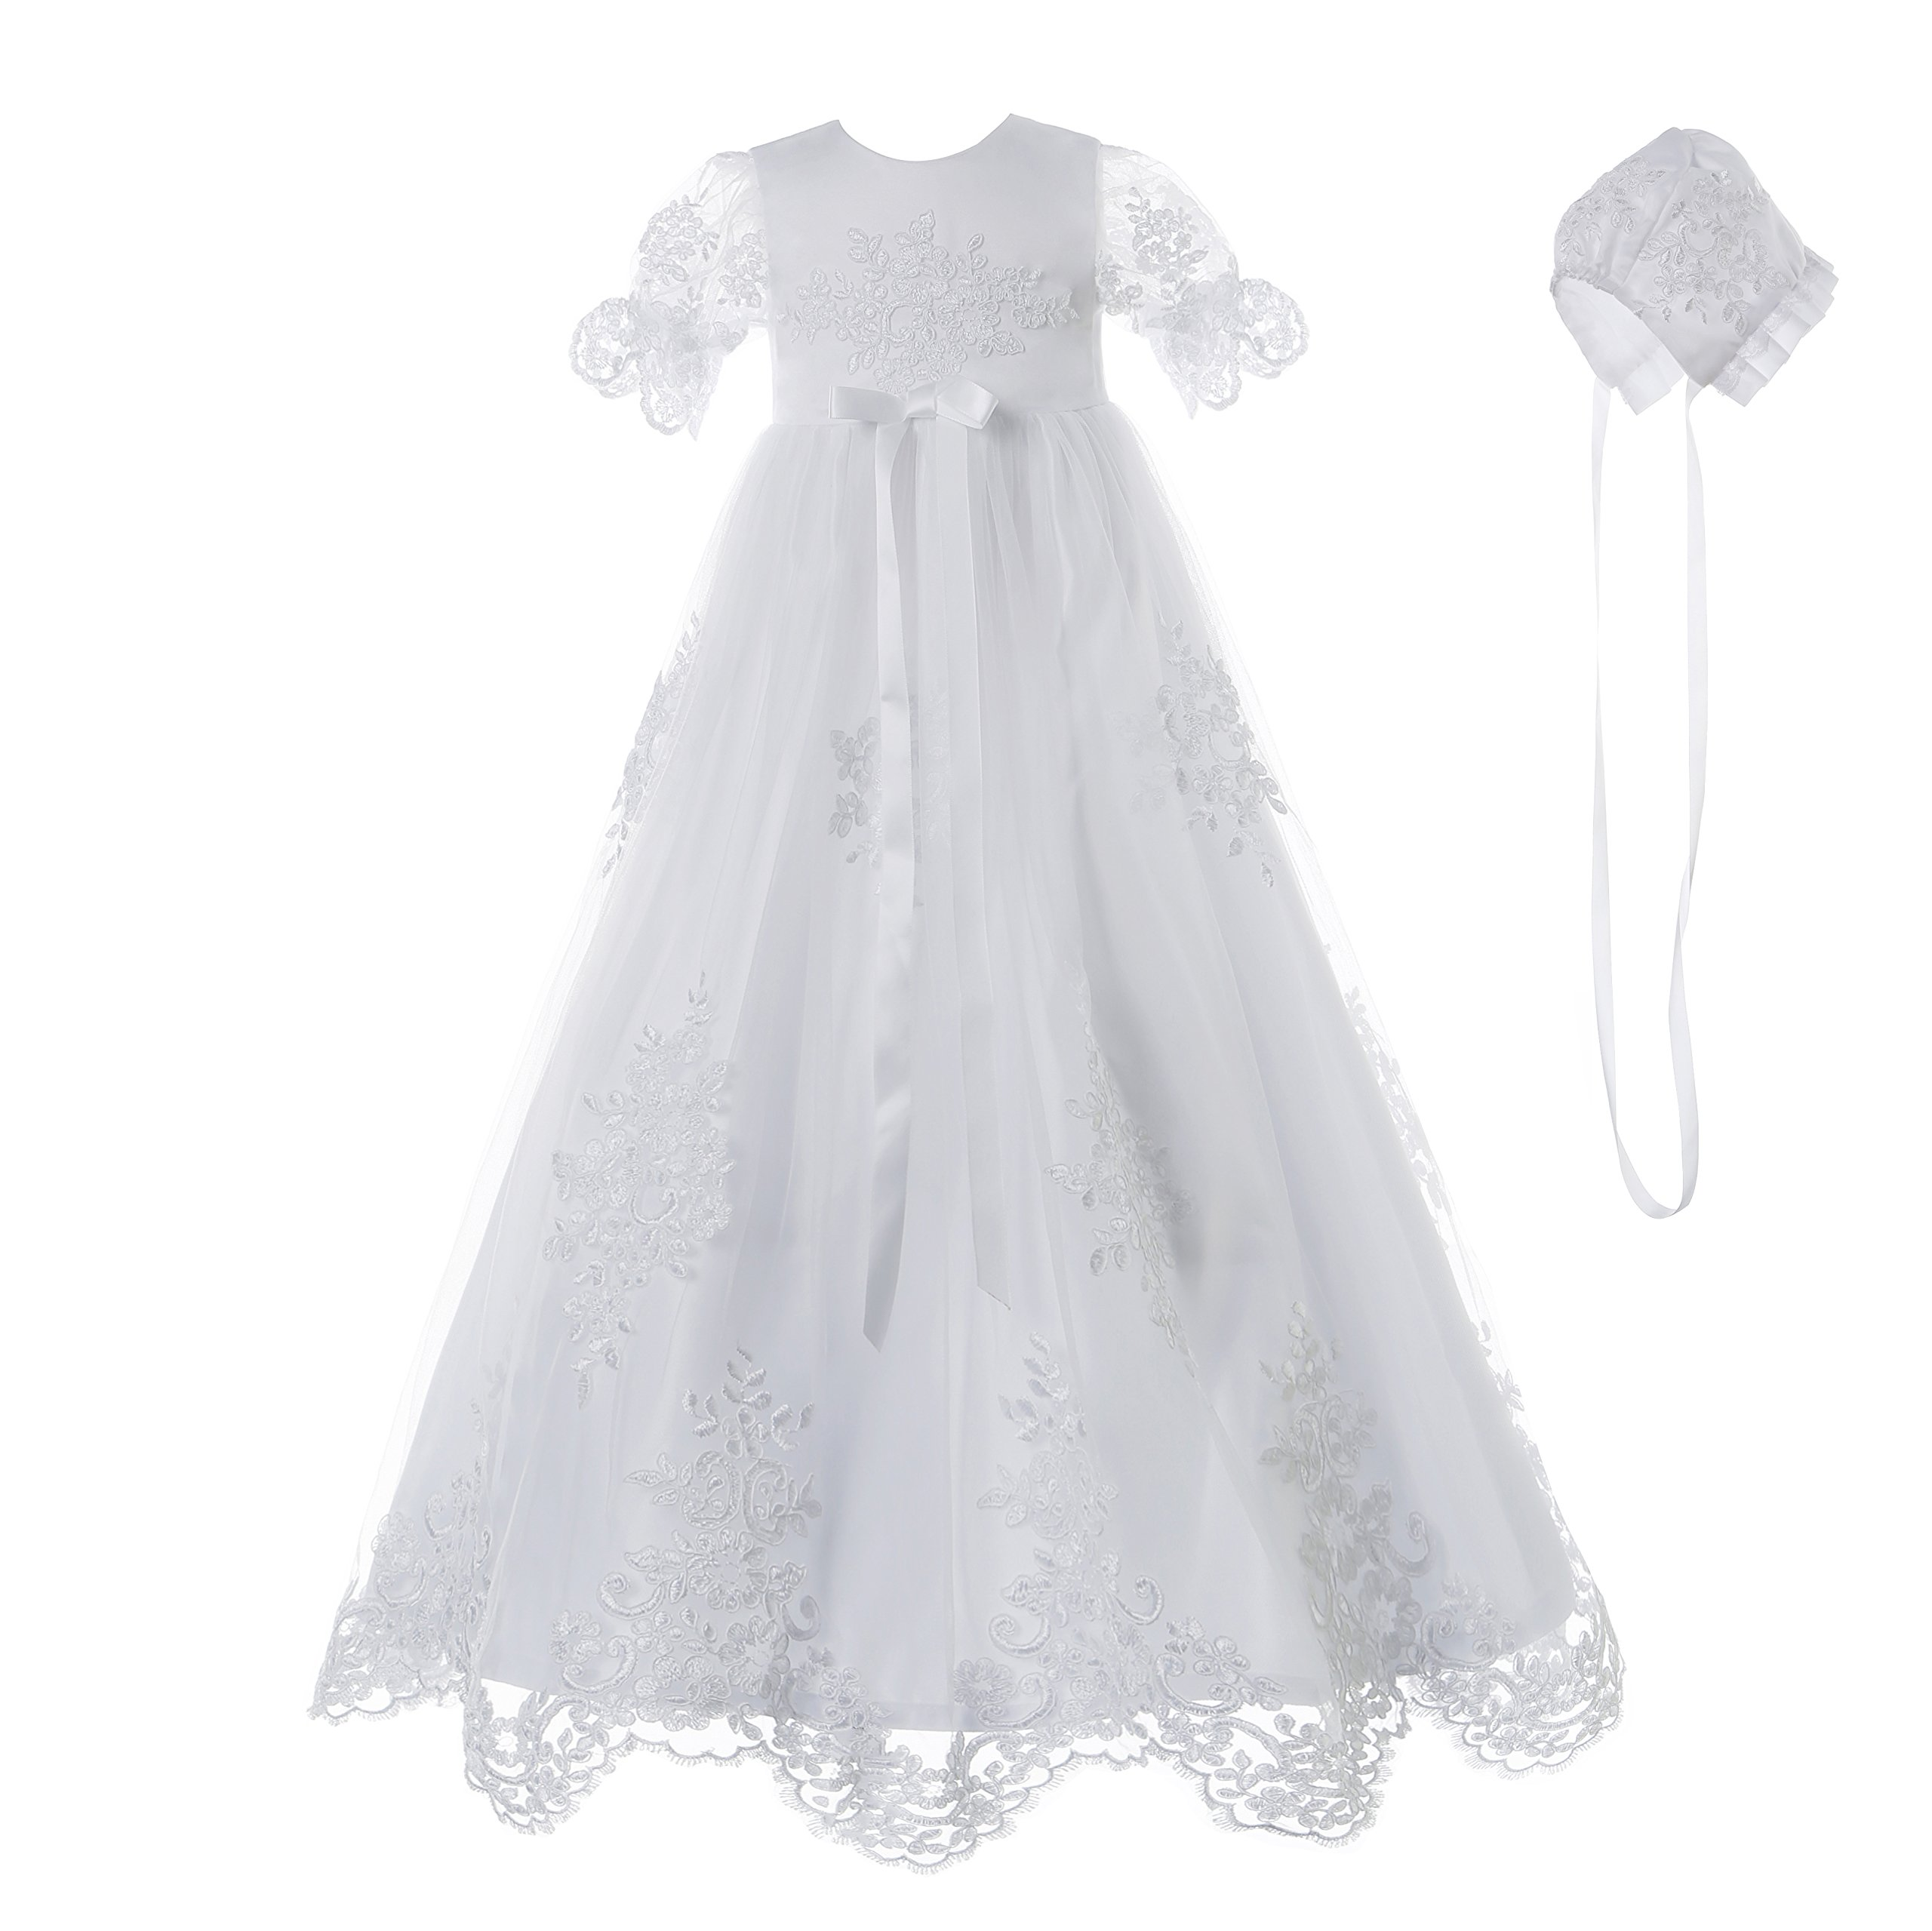 NIMBLE Baby Girls Baptism Delicate Embroideried Gown with Bonnet for 0-12 Months